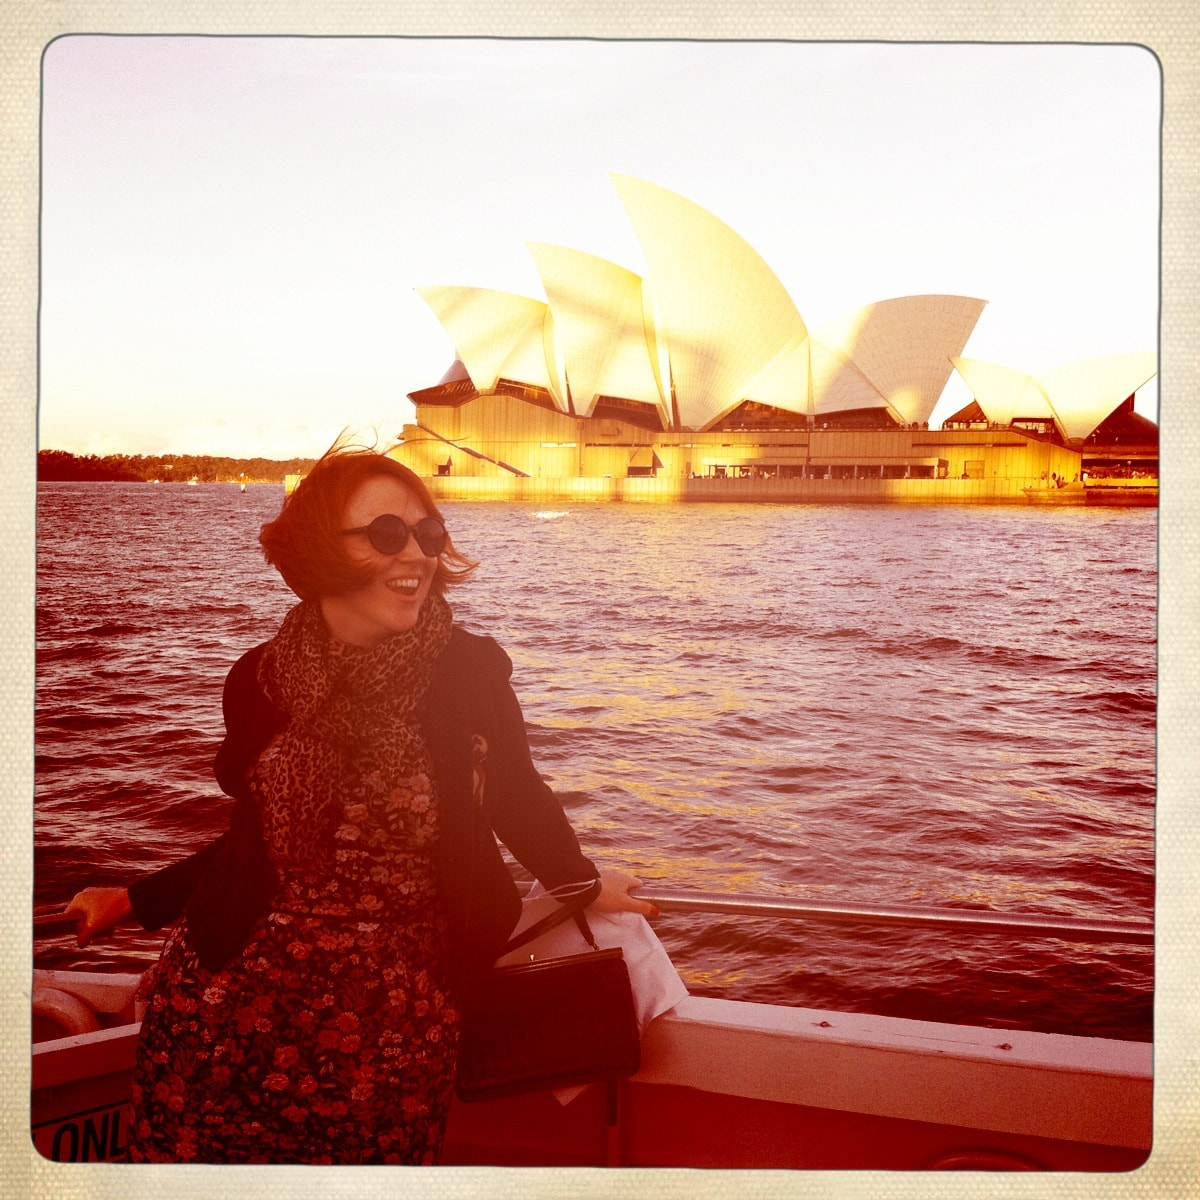 Alexandra from Rushcutters Bay